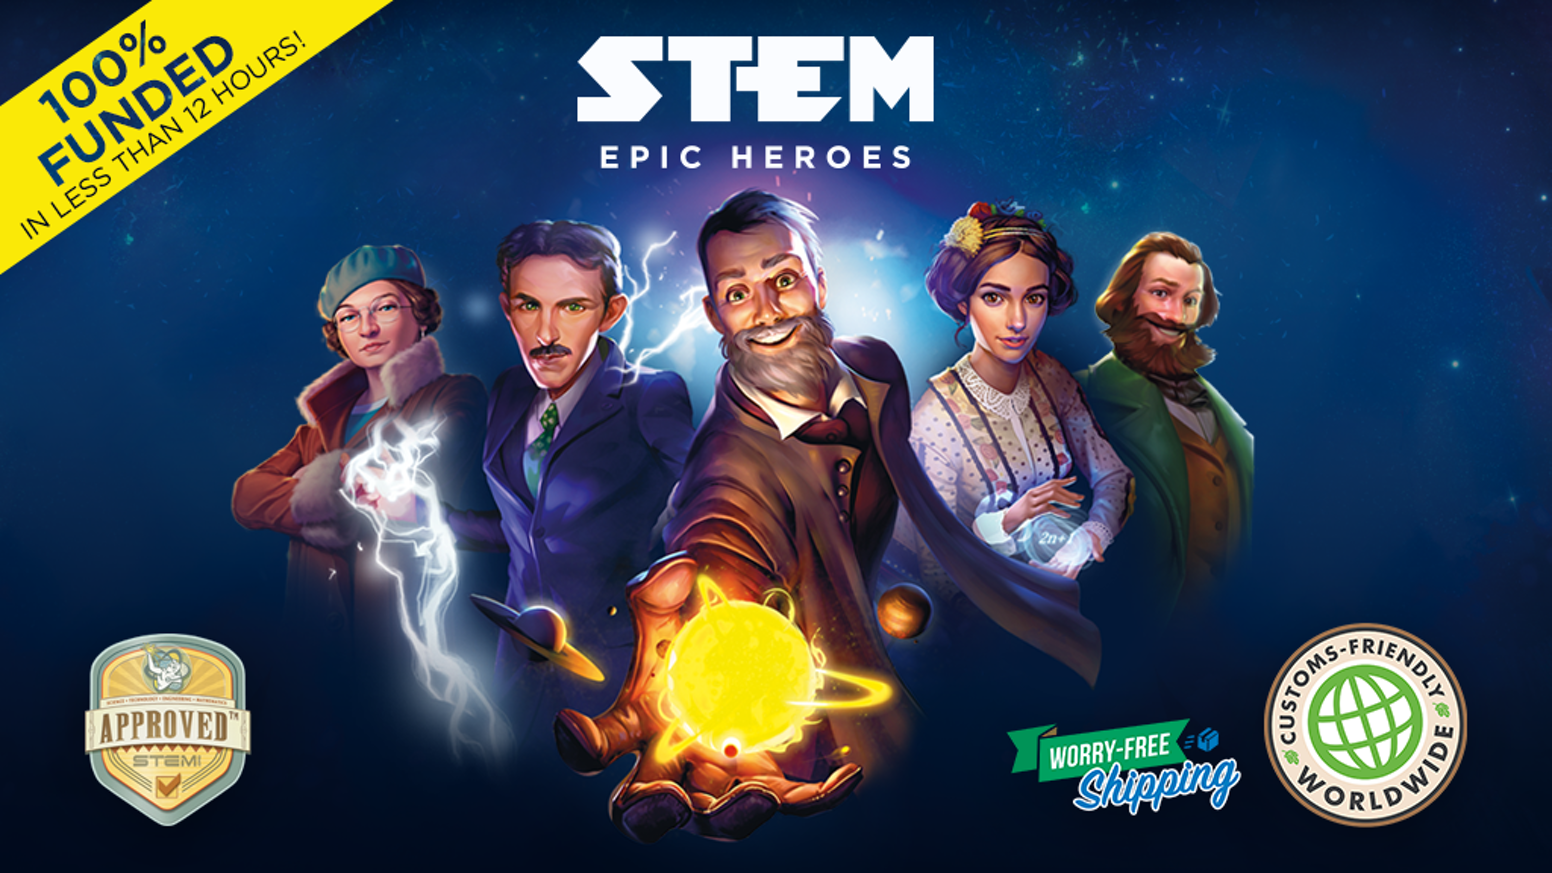 stem epic heroes by hologrin studios bitcoin creator satoshi